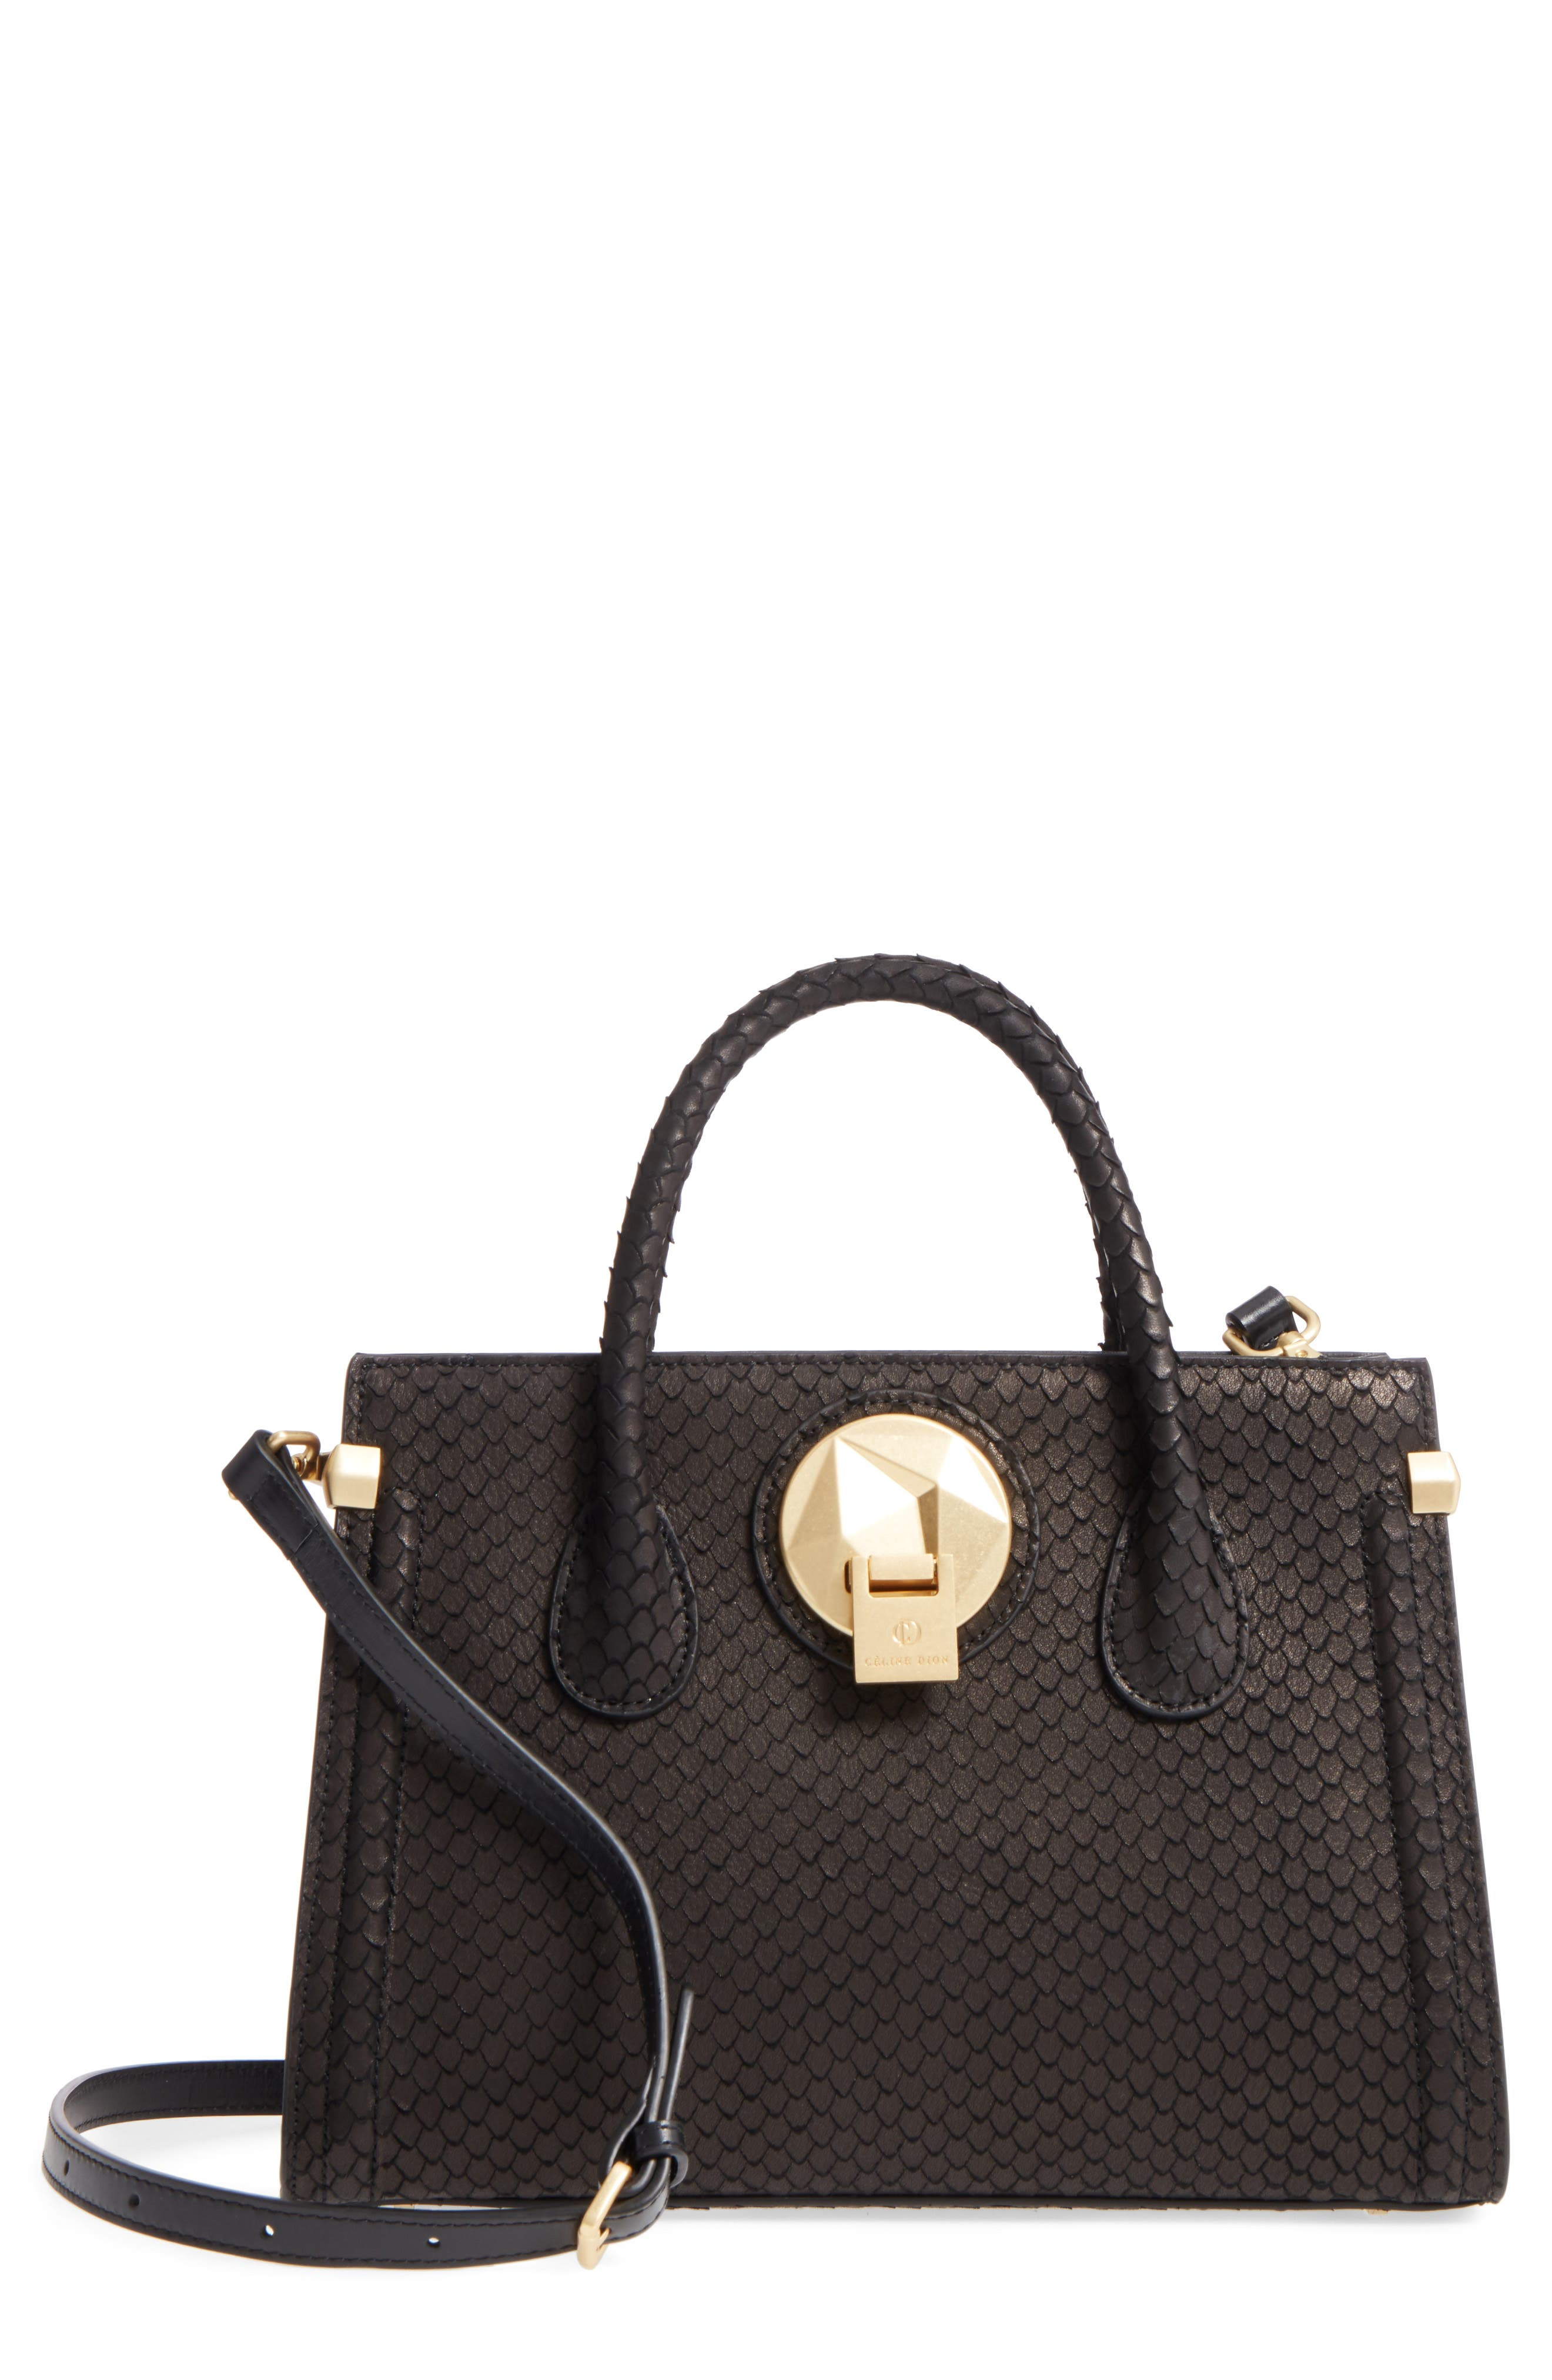 Céline Dion Octave Snake Embossed Leather Satchel,                             Main thumbnail 1, color,                             Black Snake